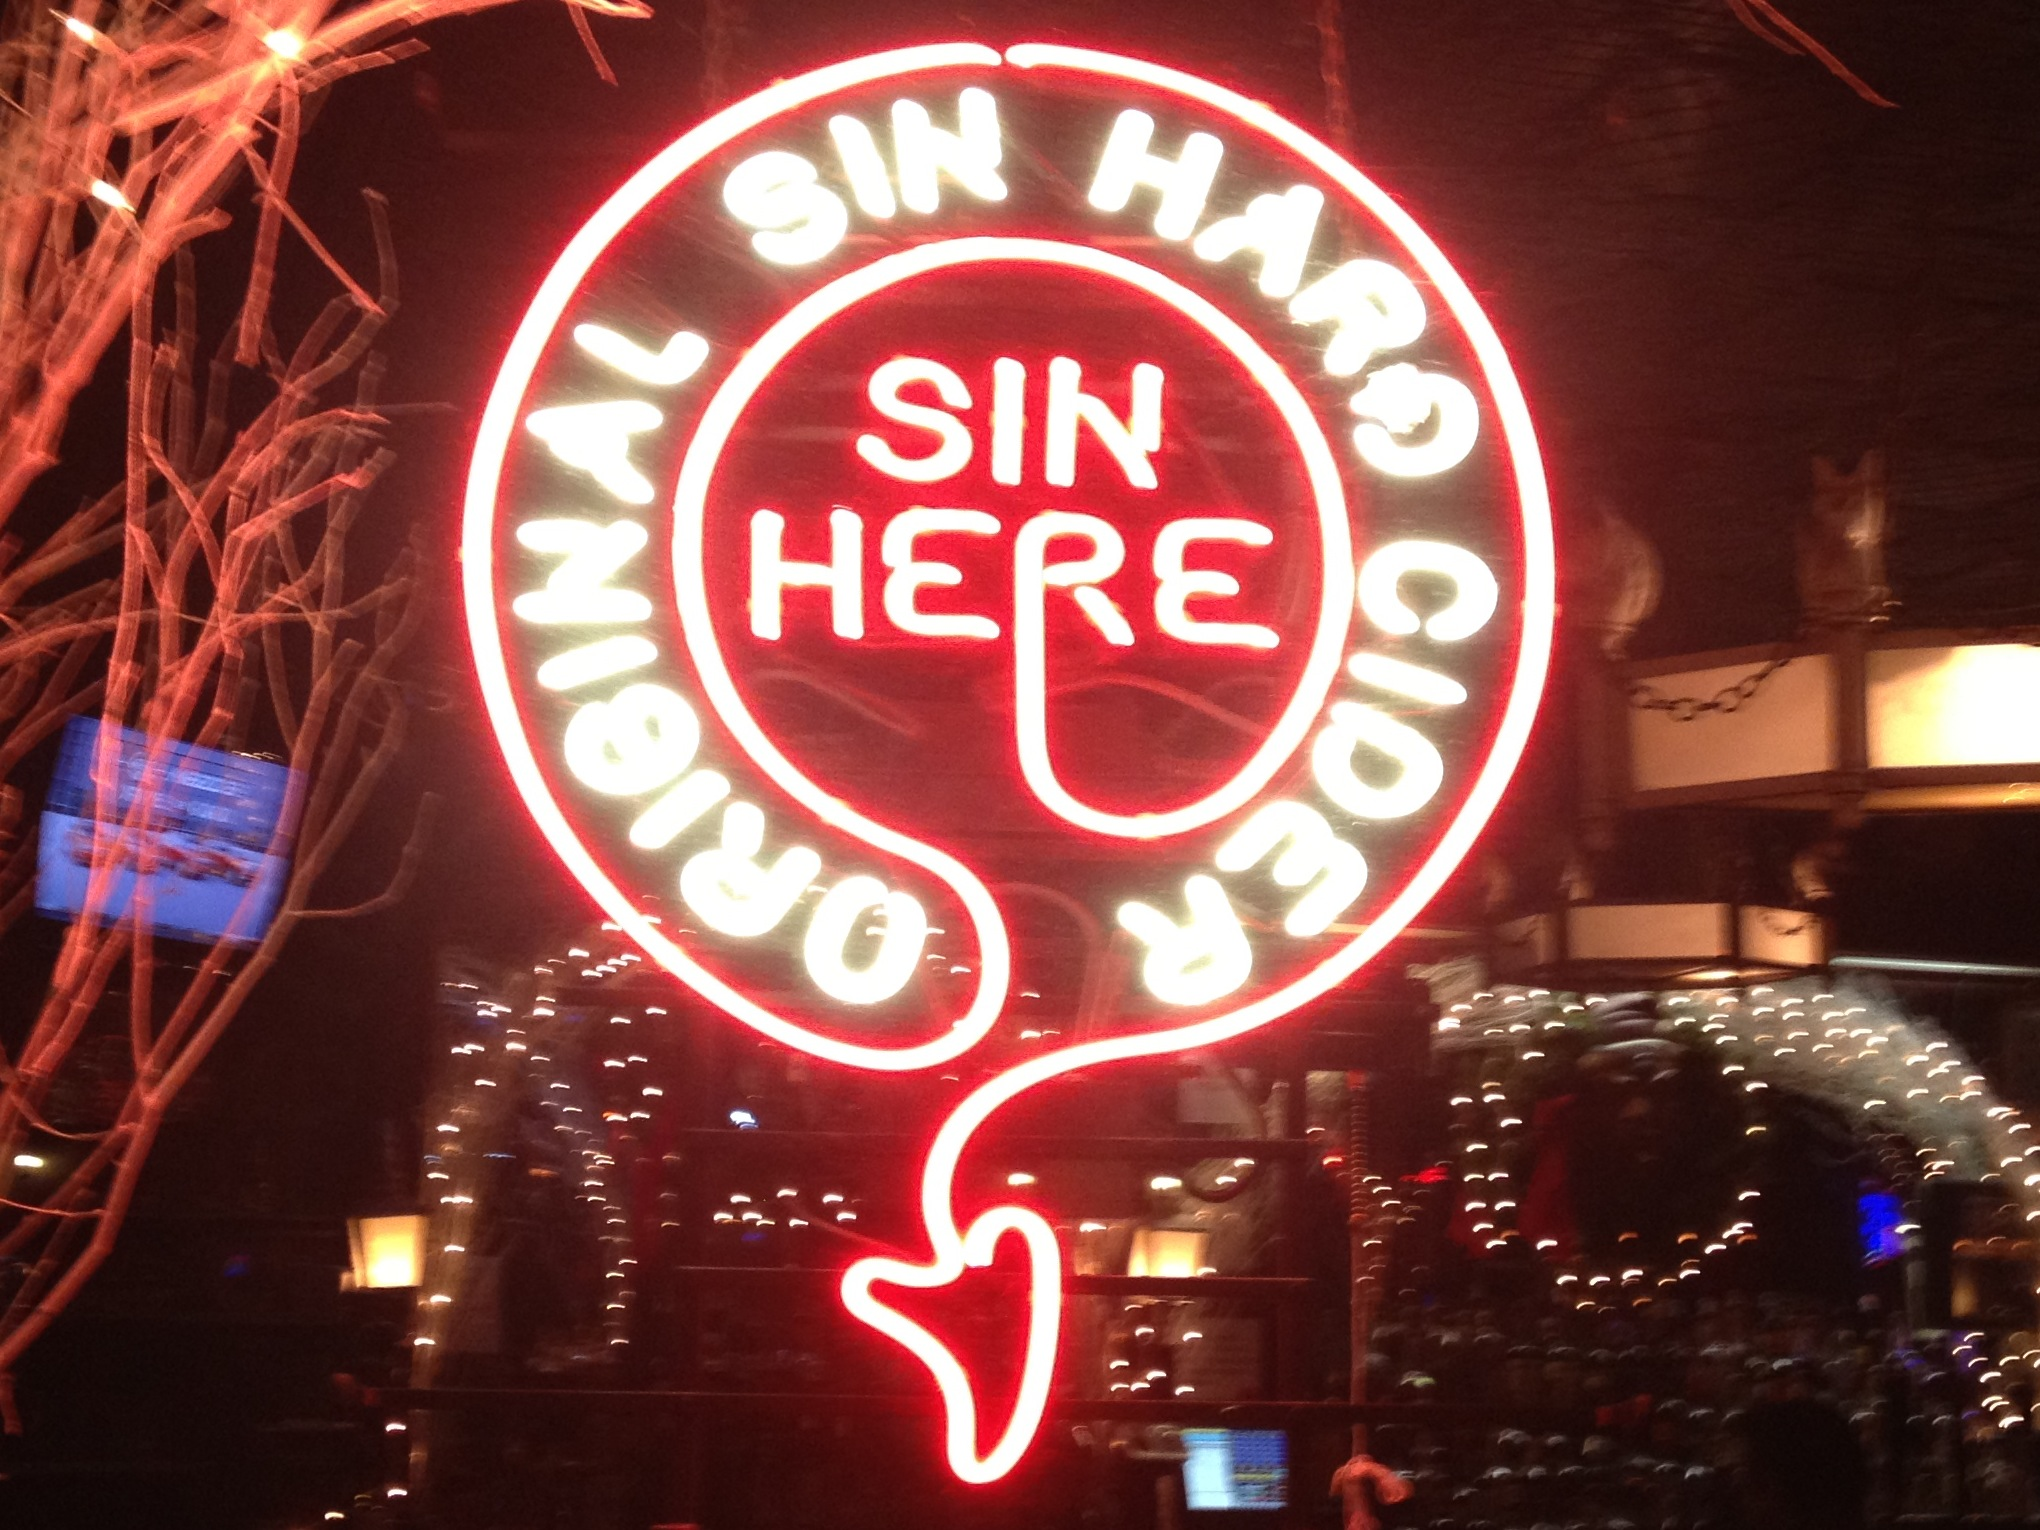 Our one and only OS neon proudly displayed @ The White Horse Tavern (567 Hudson Street, West Village, NYC)